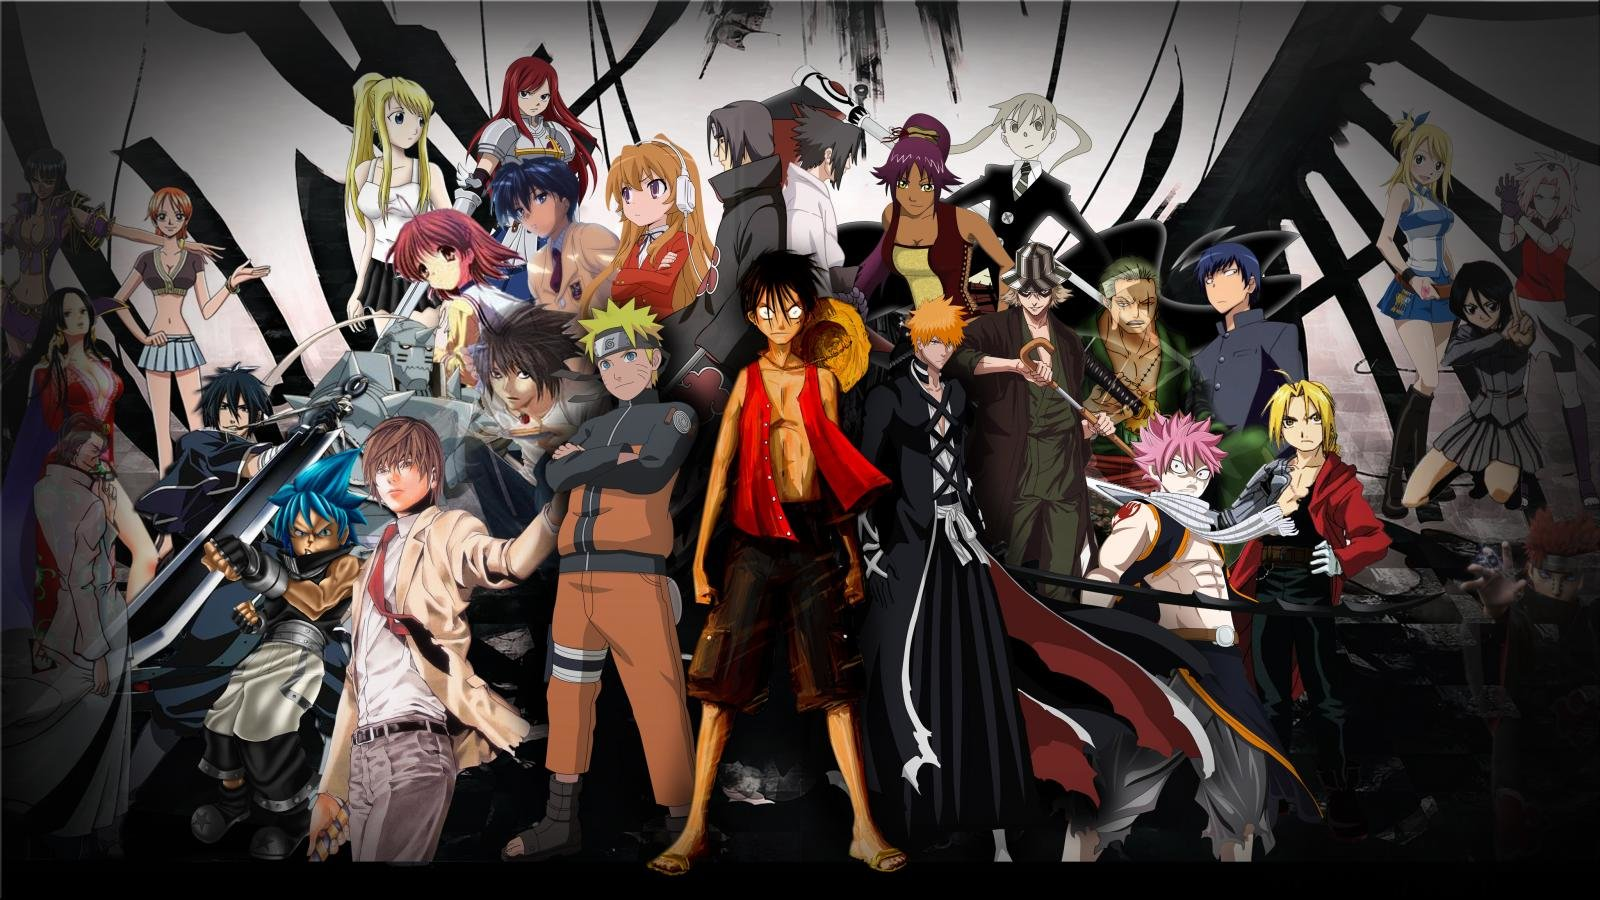 Awesome Crossover Free Wallpaper ID130737 For Hd 1600x900 Computer